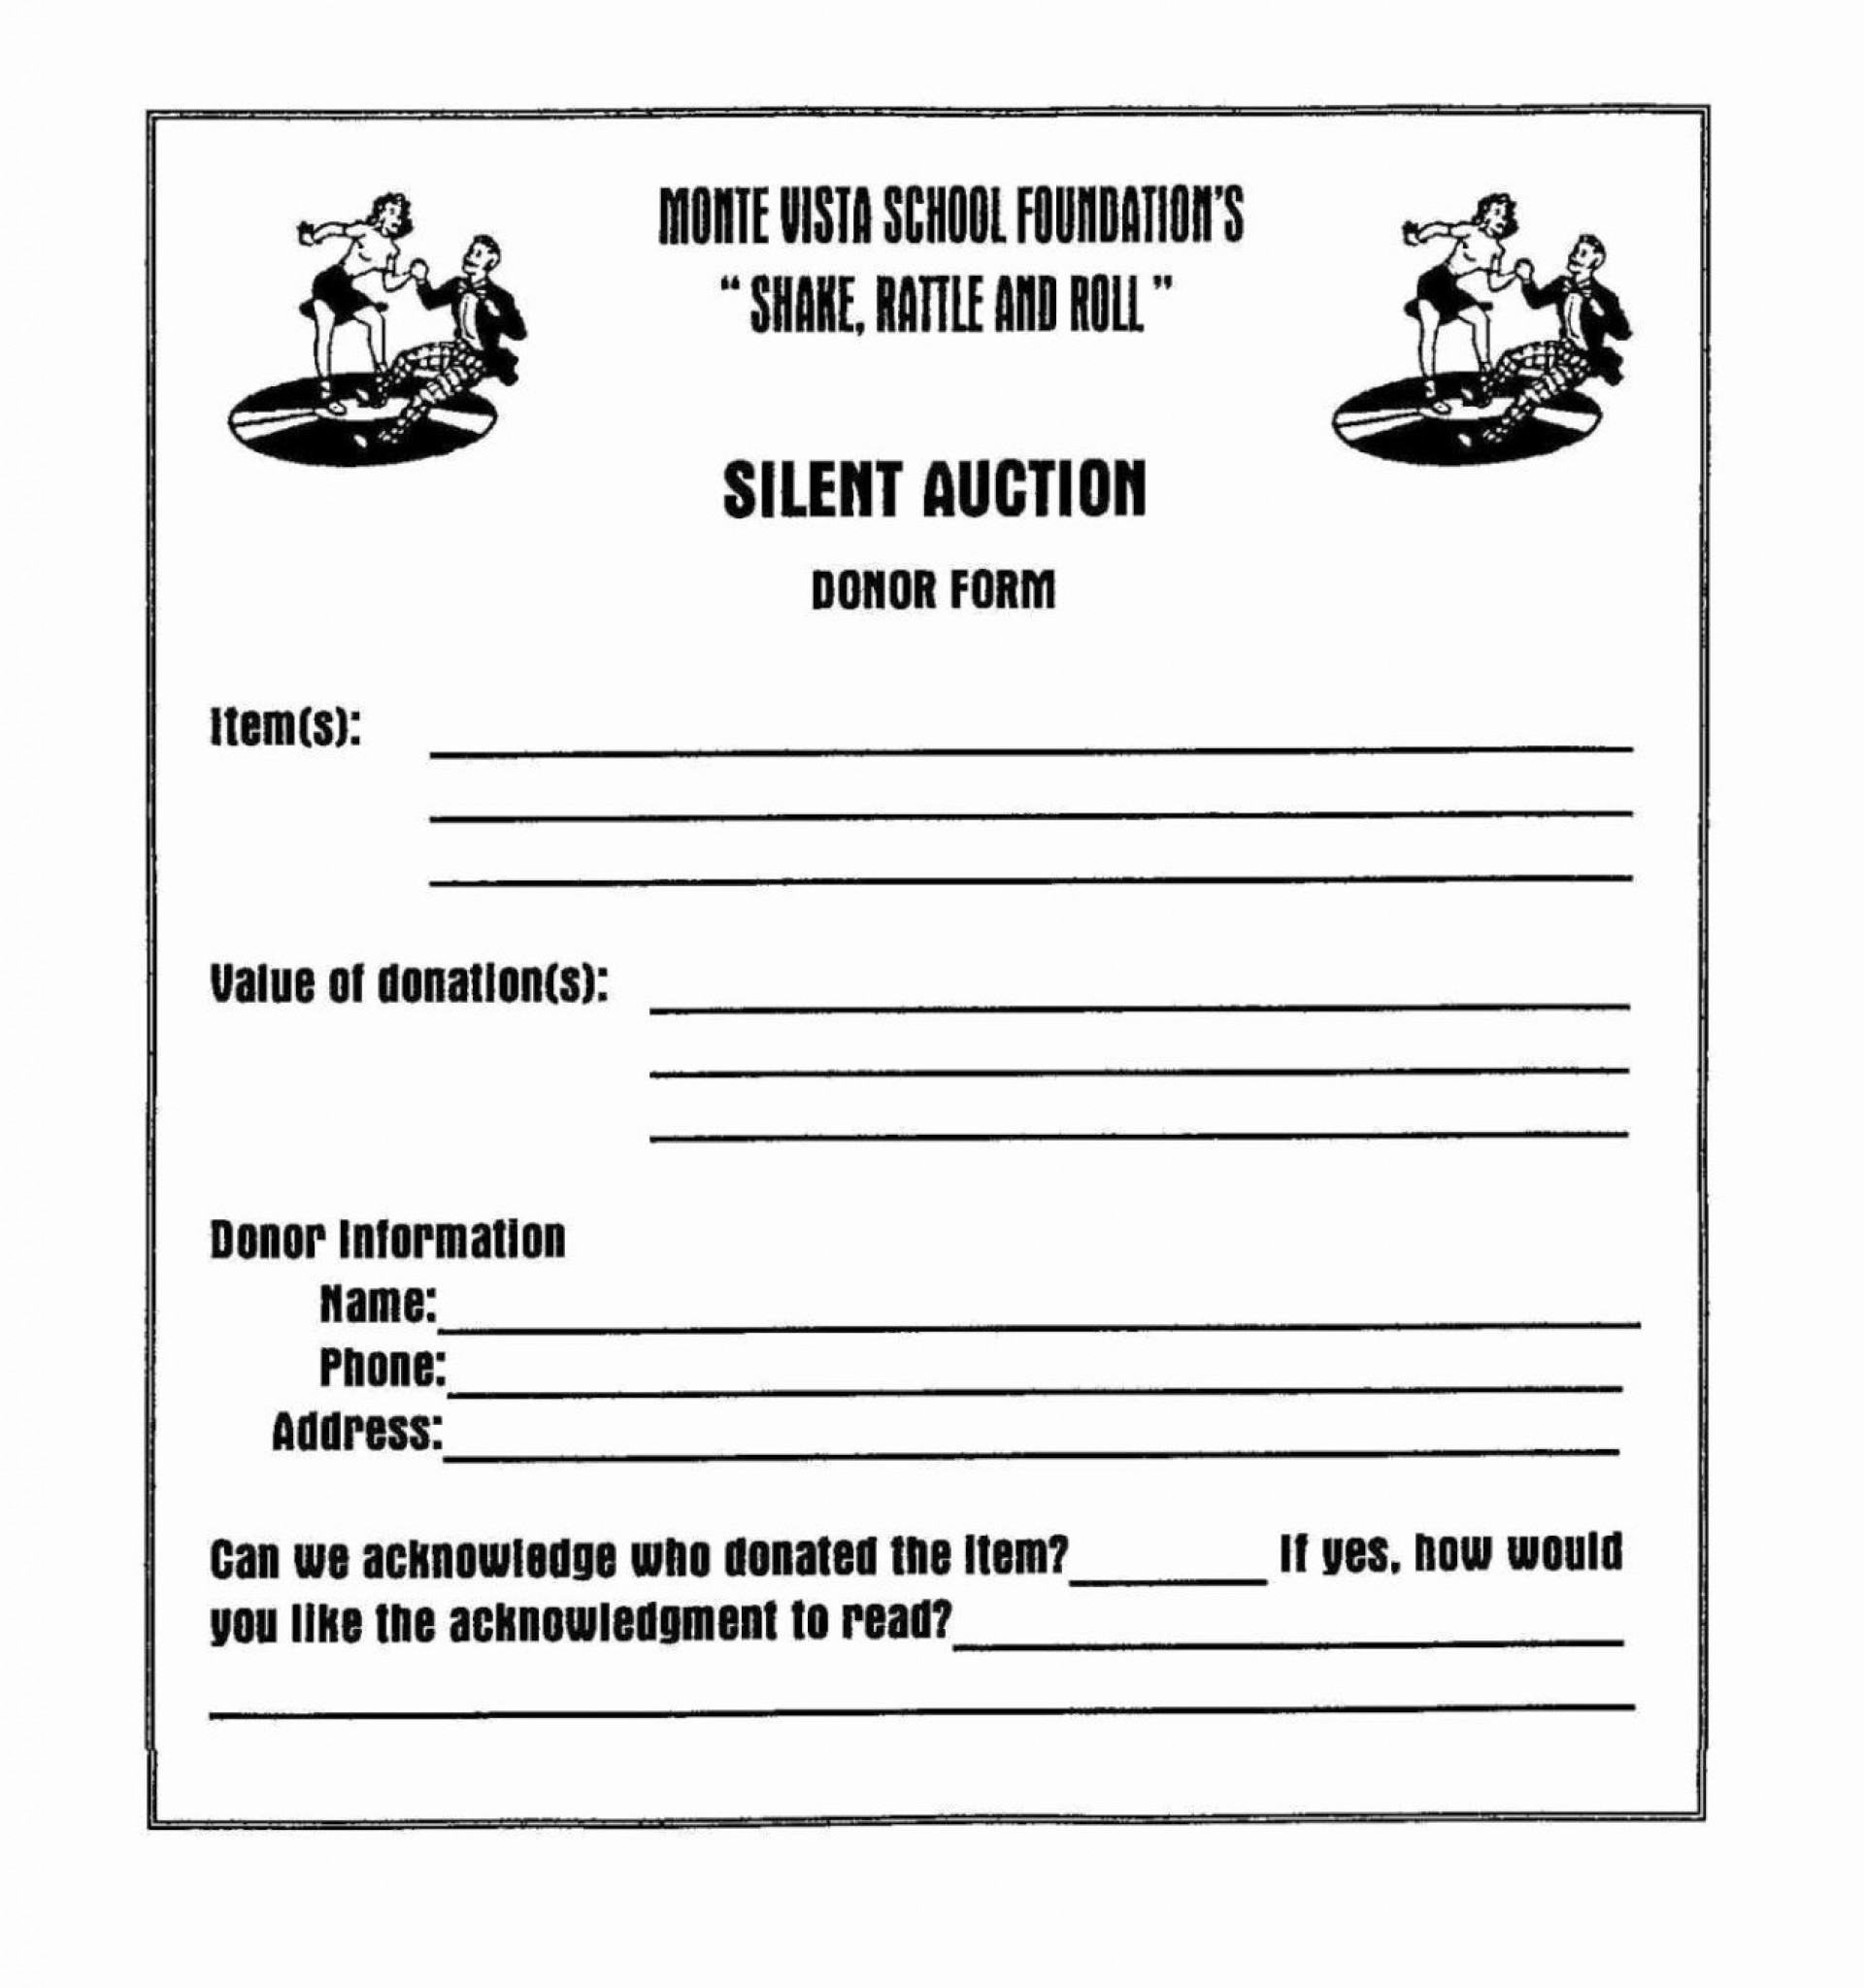 001 Beautiful Silent Auction Donation Certificate Template High Resolution 1920